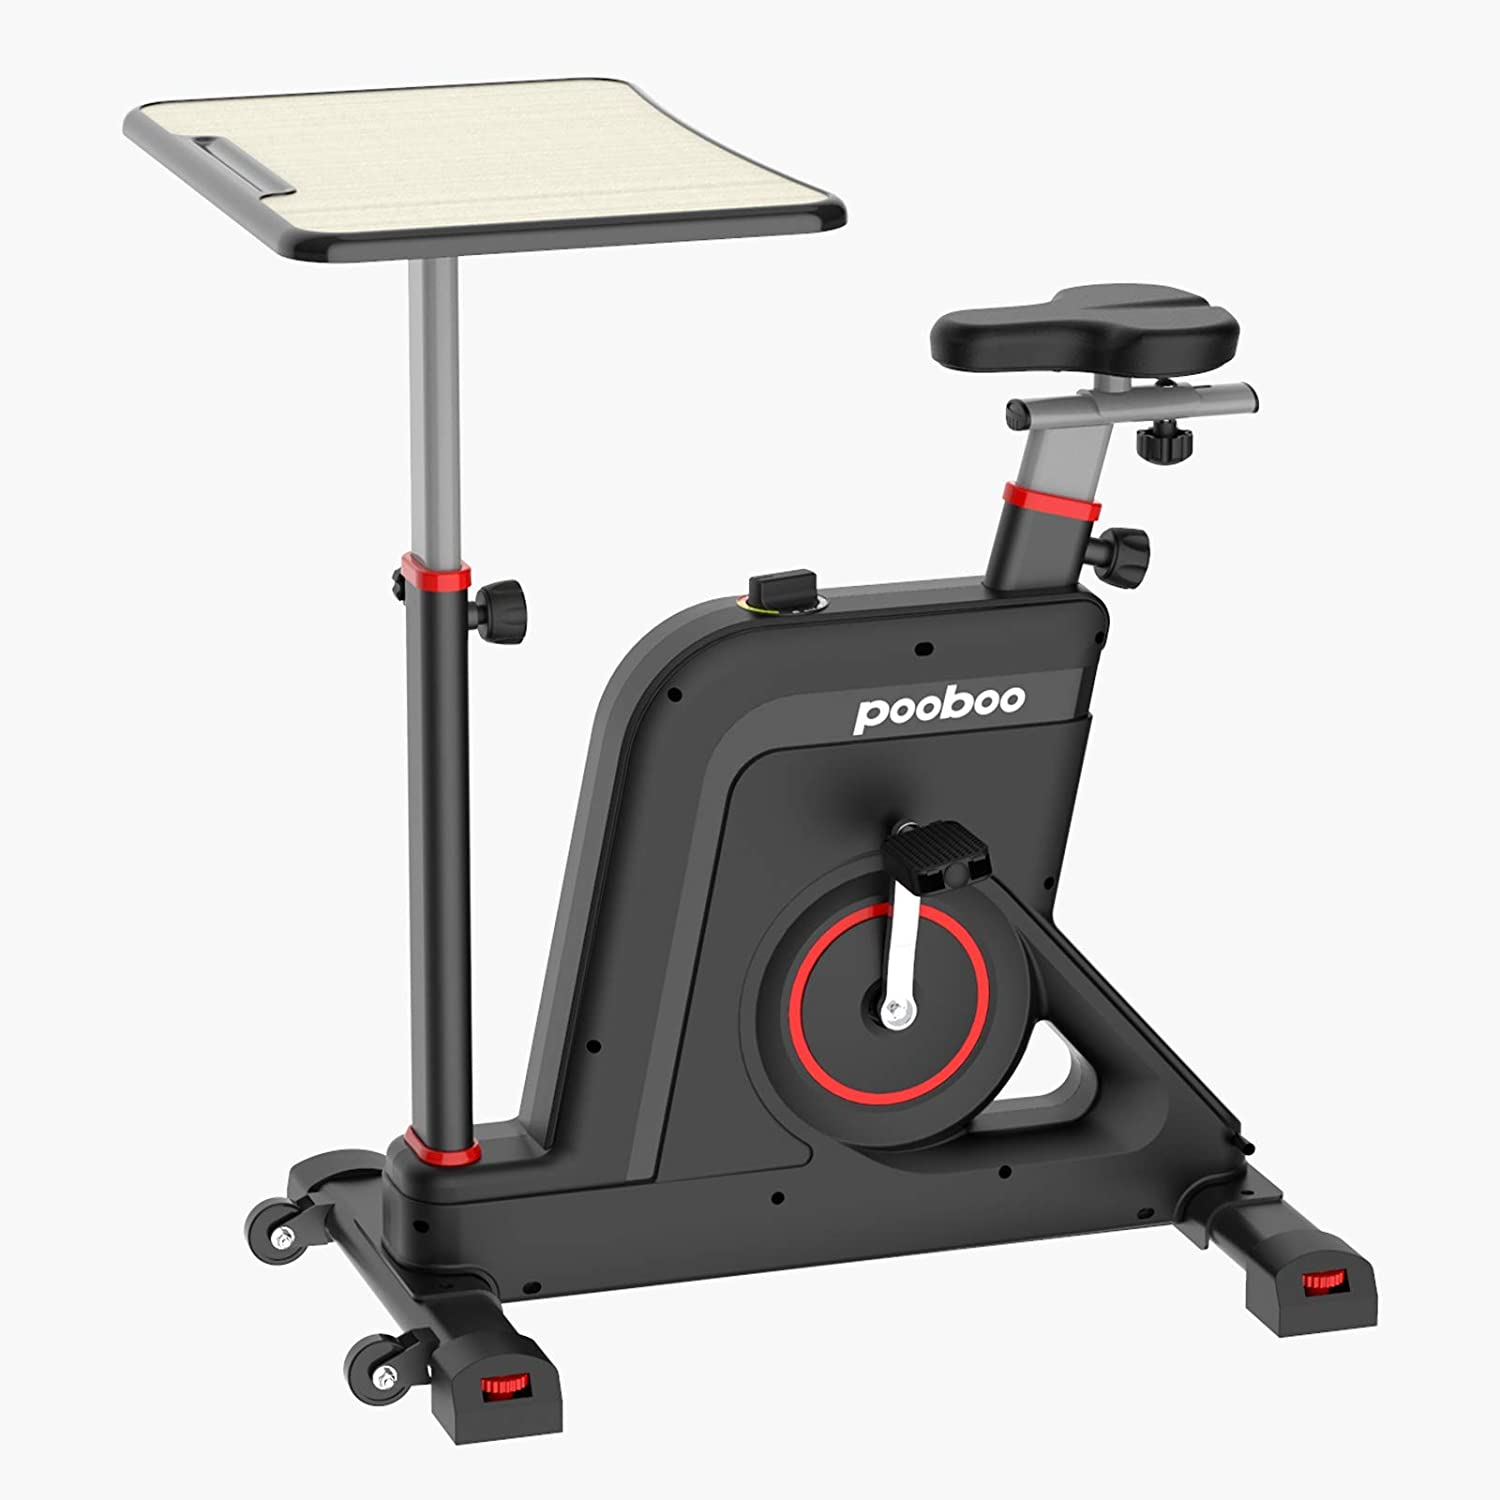 Afully Exercise Bike Desk Cycle Standing Desk Bike, 8 Magnetic Resistance, Height Adjustable, Super Quiet for Home Office School Indoor Bicycle Fitness